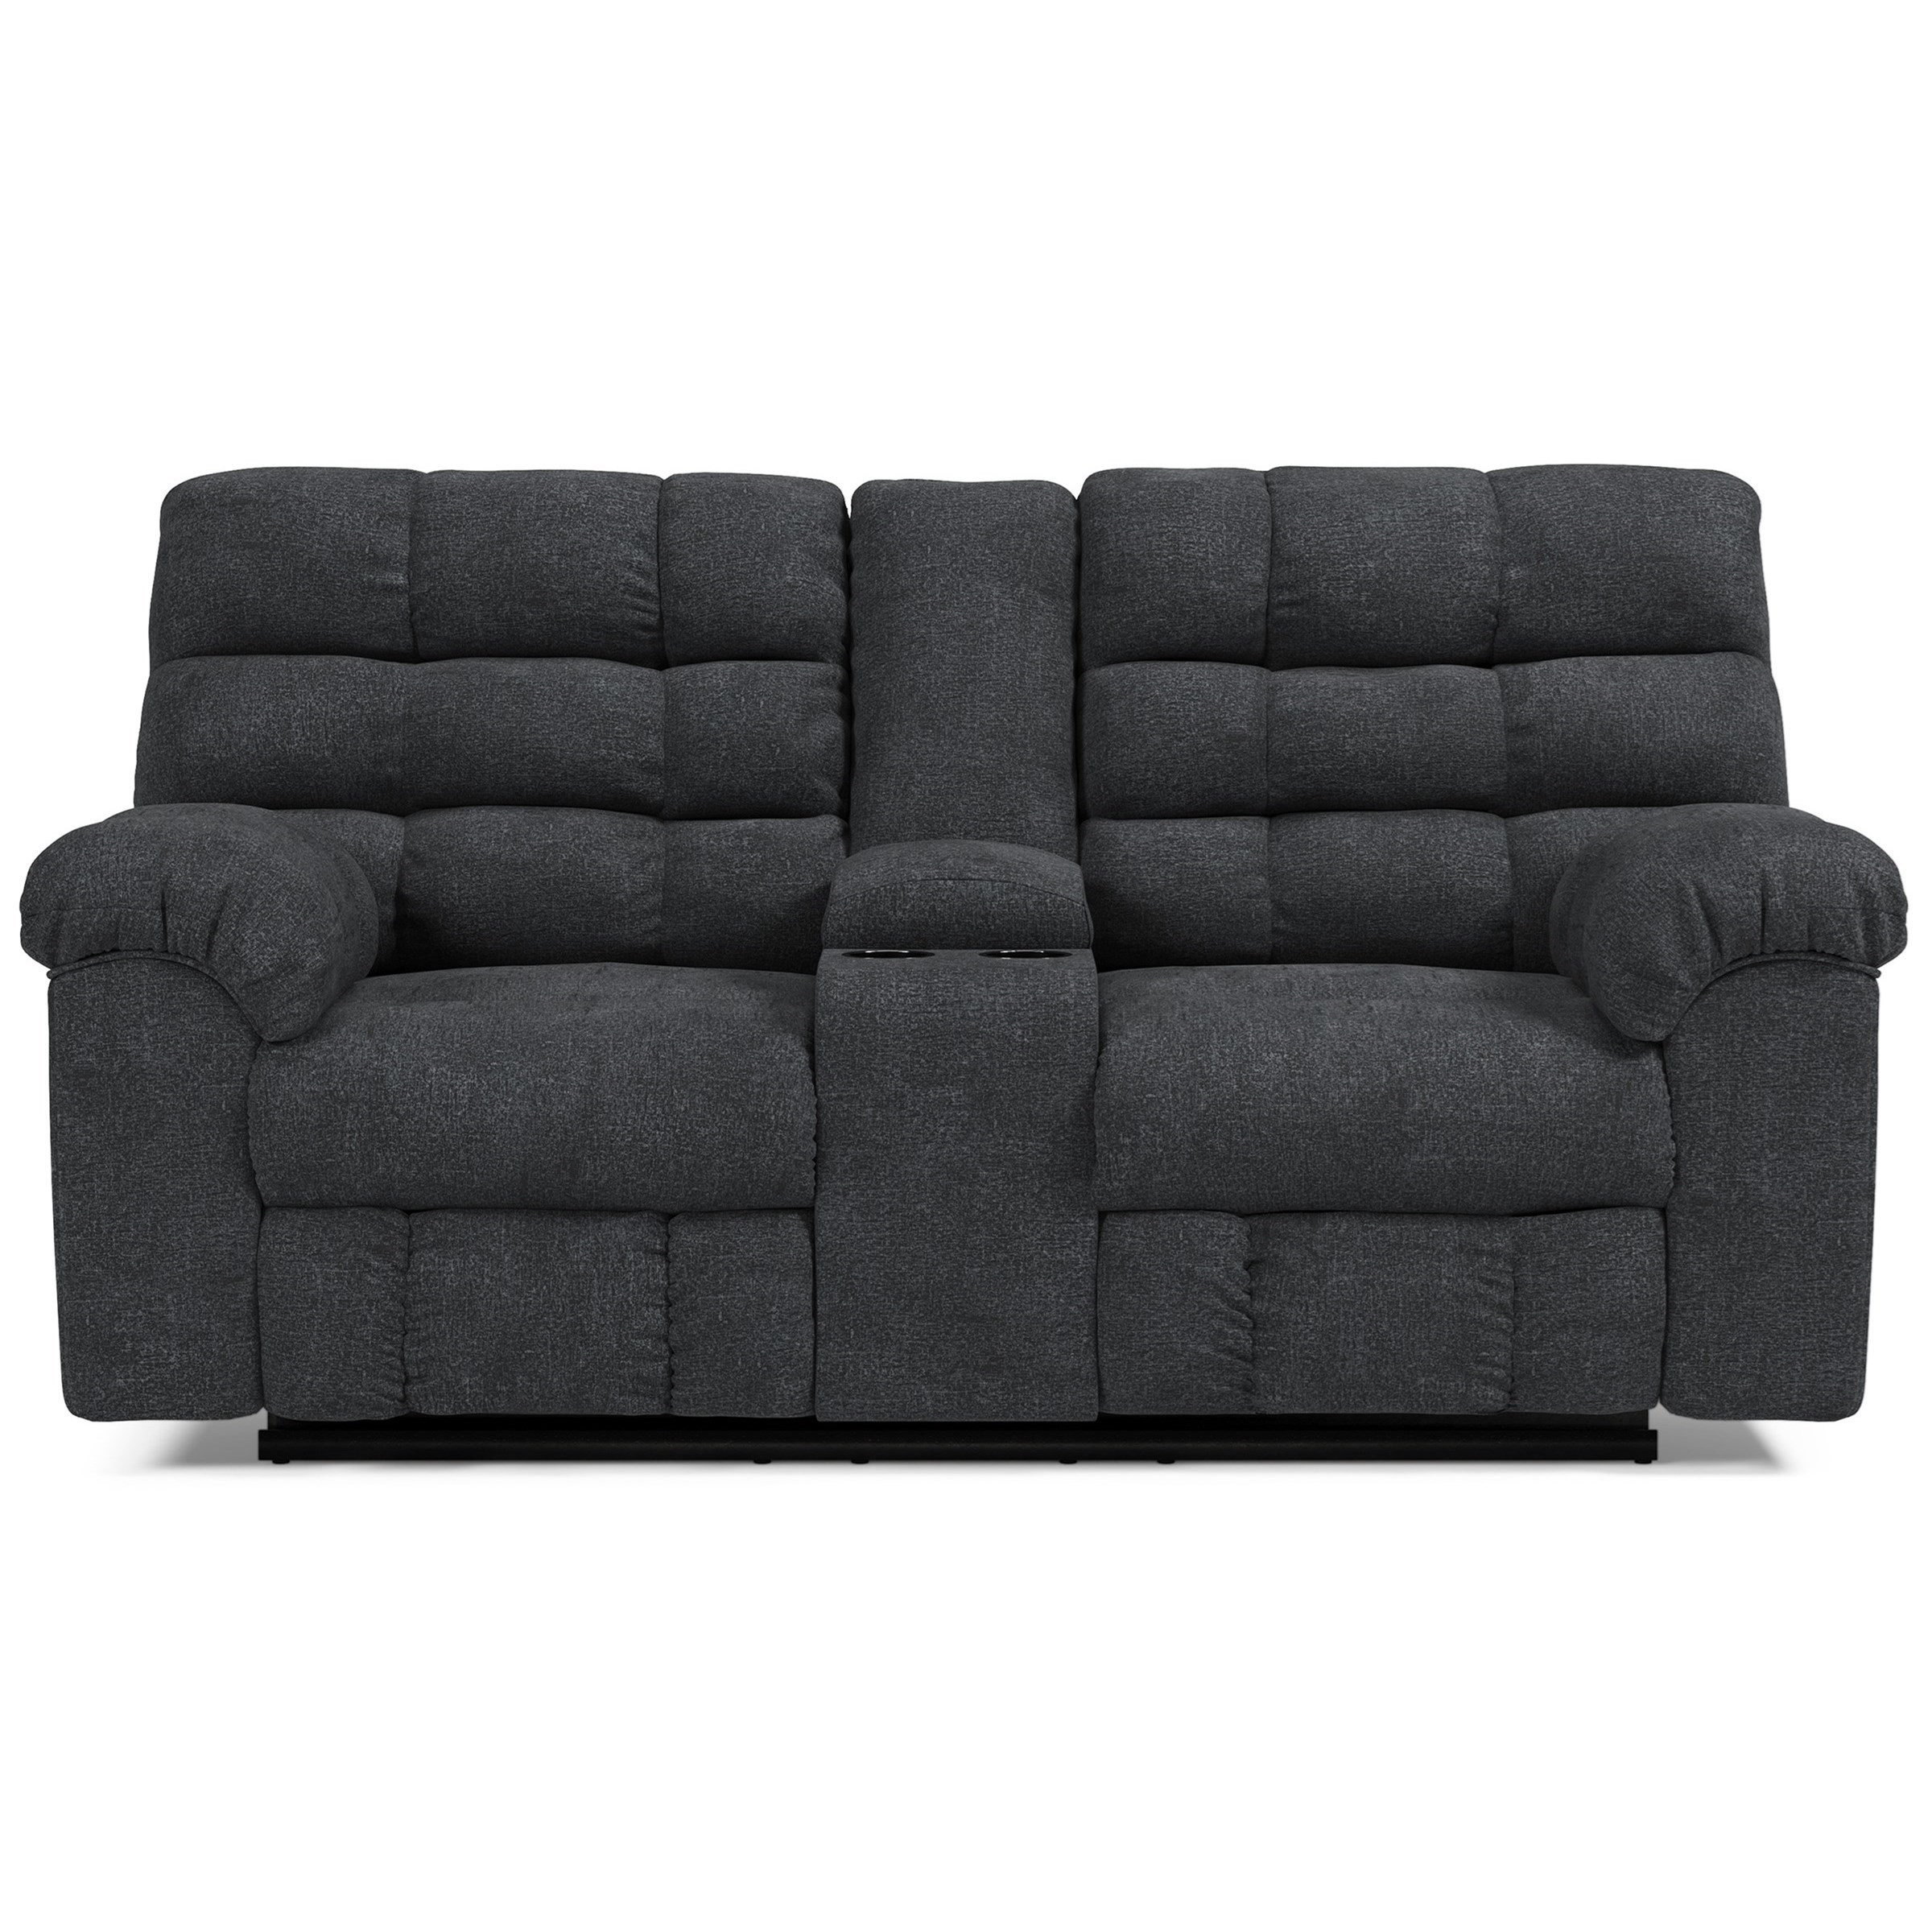 Wilhurst Double Reclining Loveseat w/ Console by Ashley (Signature Design) at Johnny Janosik